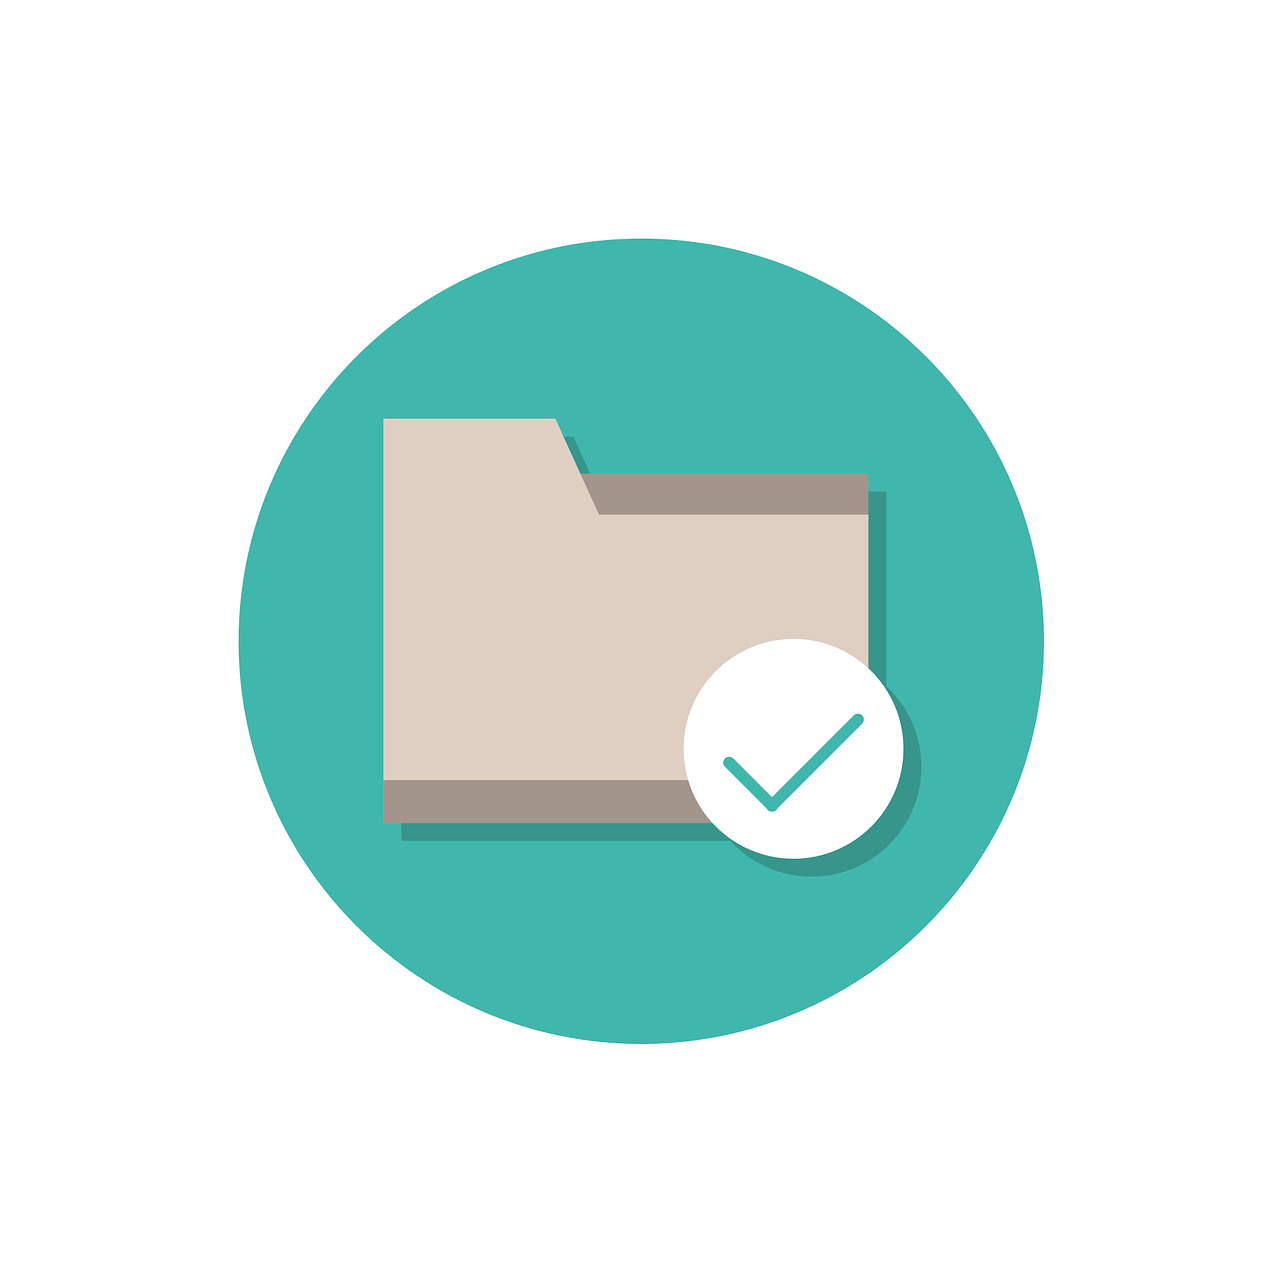 Compliance means keeping a record of not only your processing but your compliance steps. You need a folder of key documents: from your plan to DPIAs or contracts. Trace® helps you manage your privacy programme by providing you with the key documents and access to a secure document store.